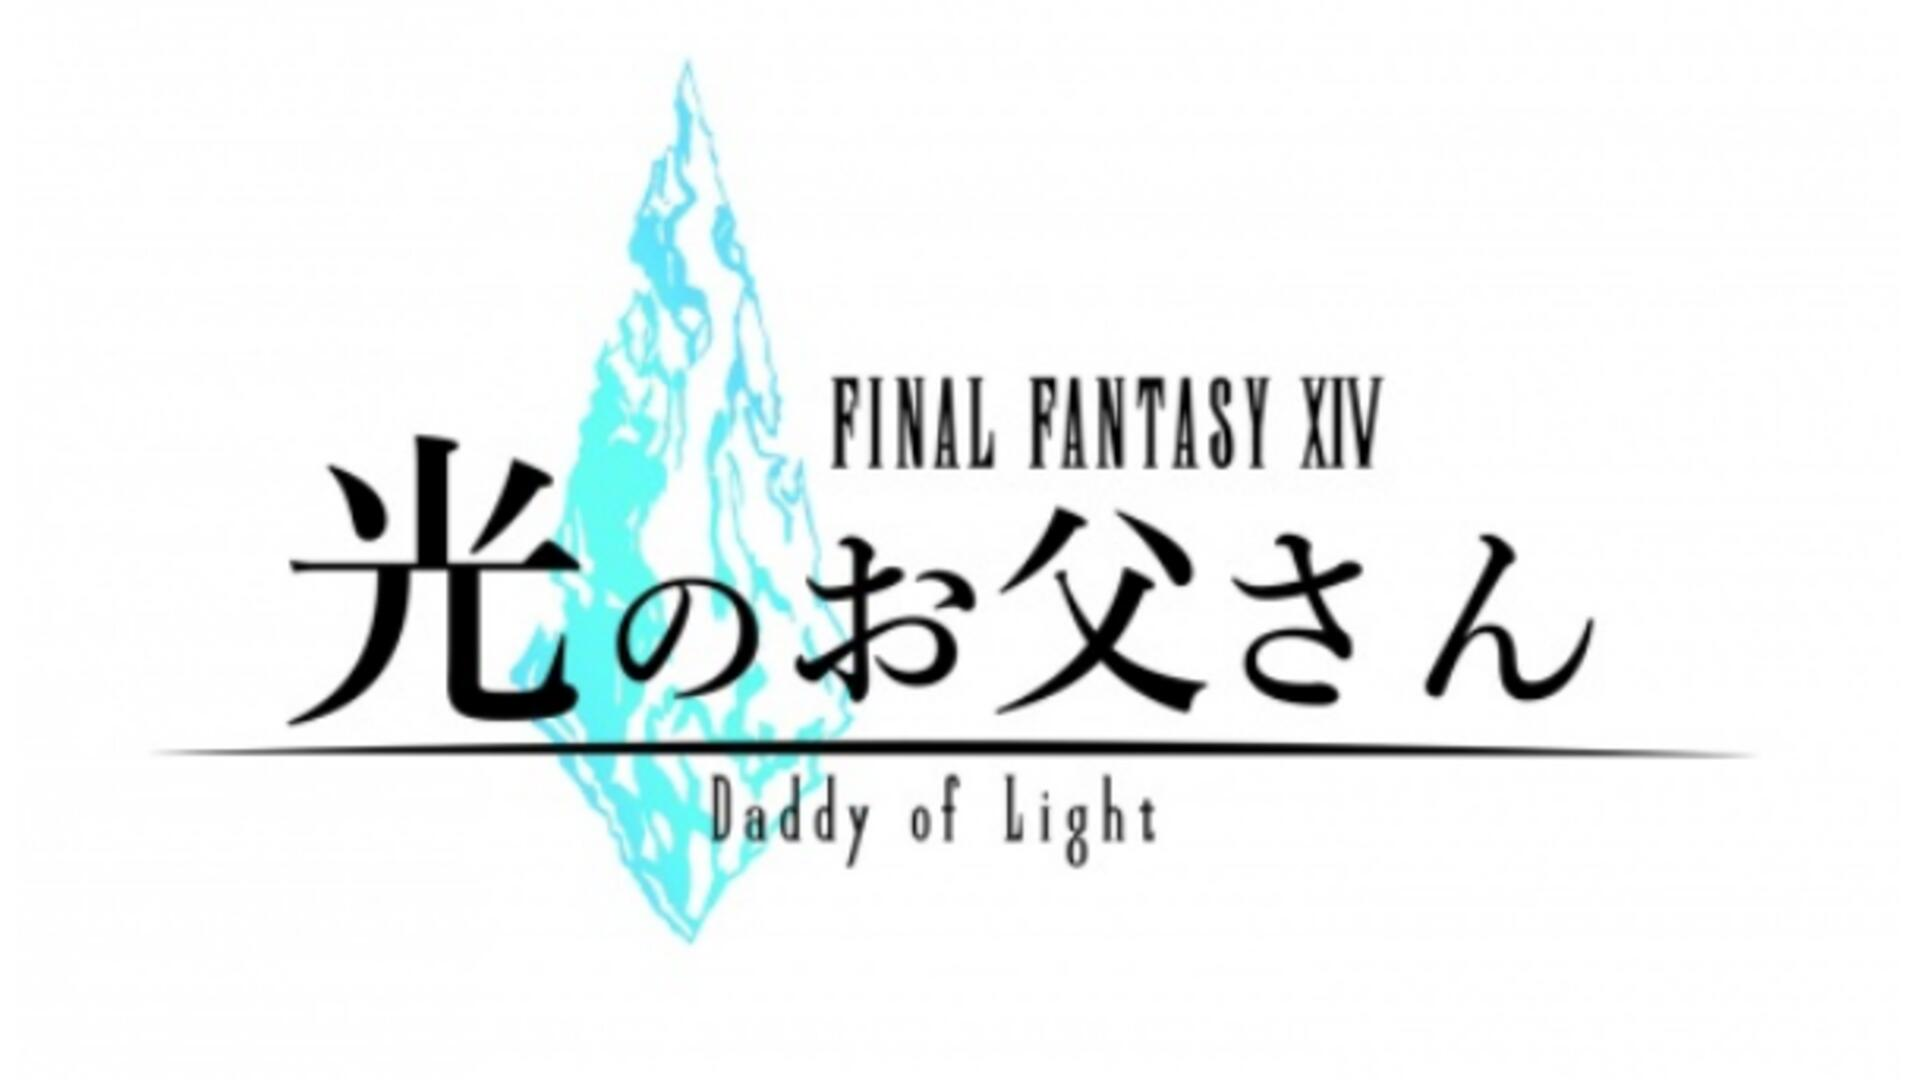 FFXIV: Daddy of Light Picked Up By Netflix, Coming Worldwide This Fall